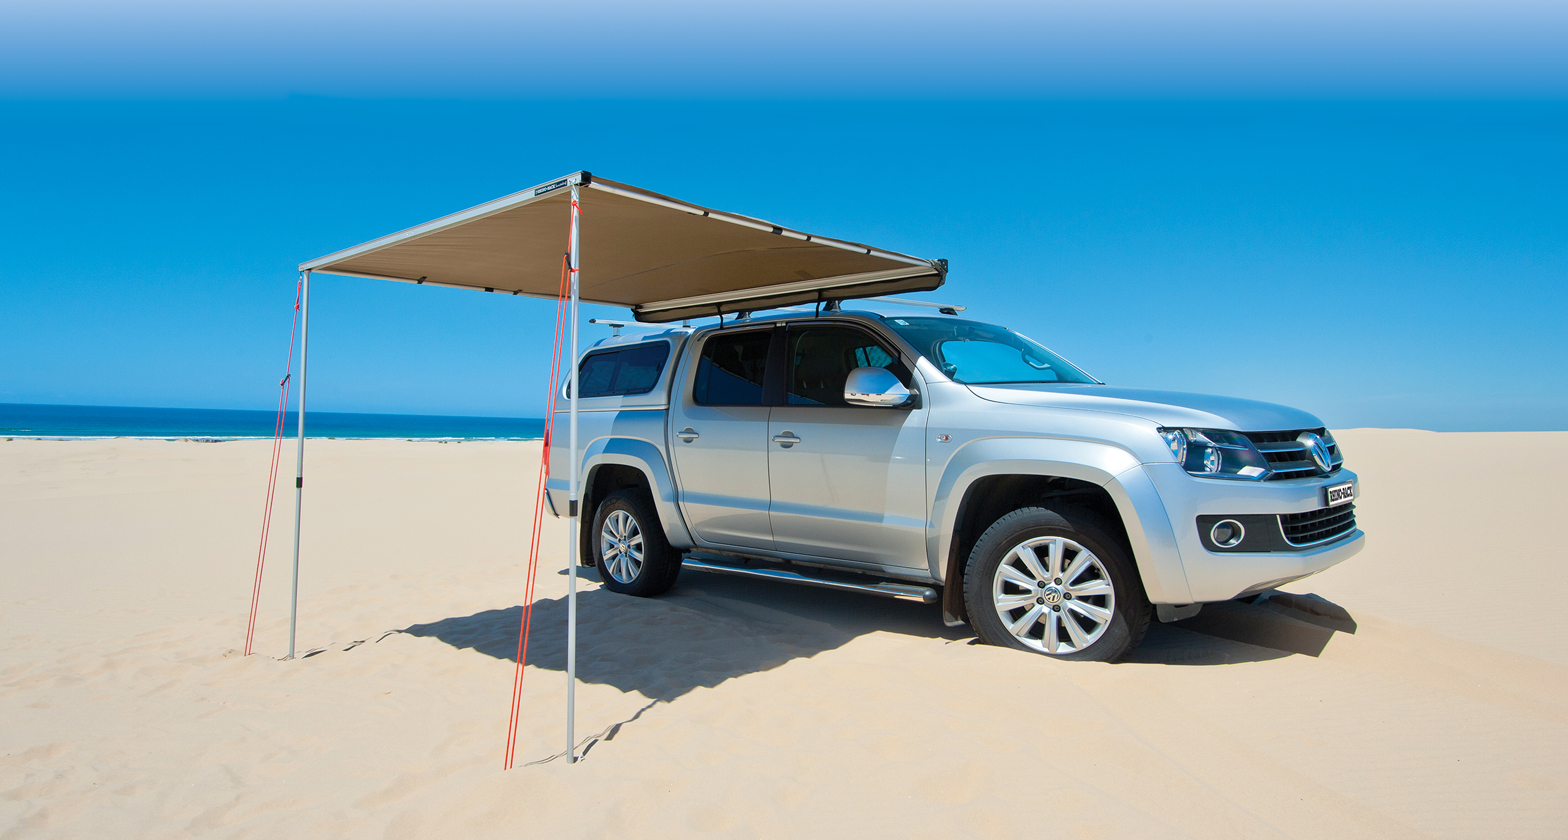 Roof Rack City Shade Awnings And Camping Roof Rack City Adelaide